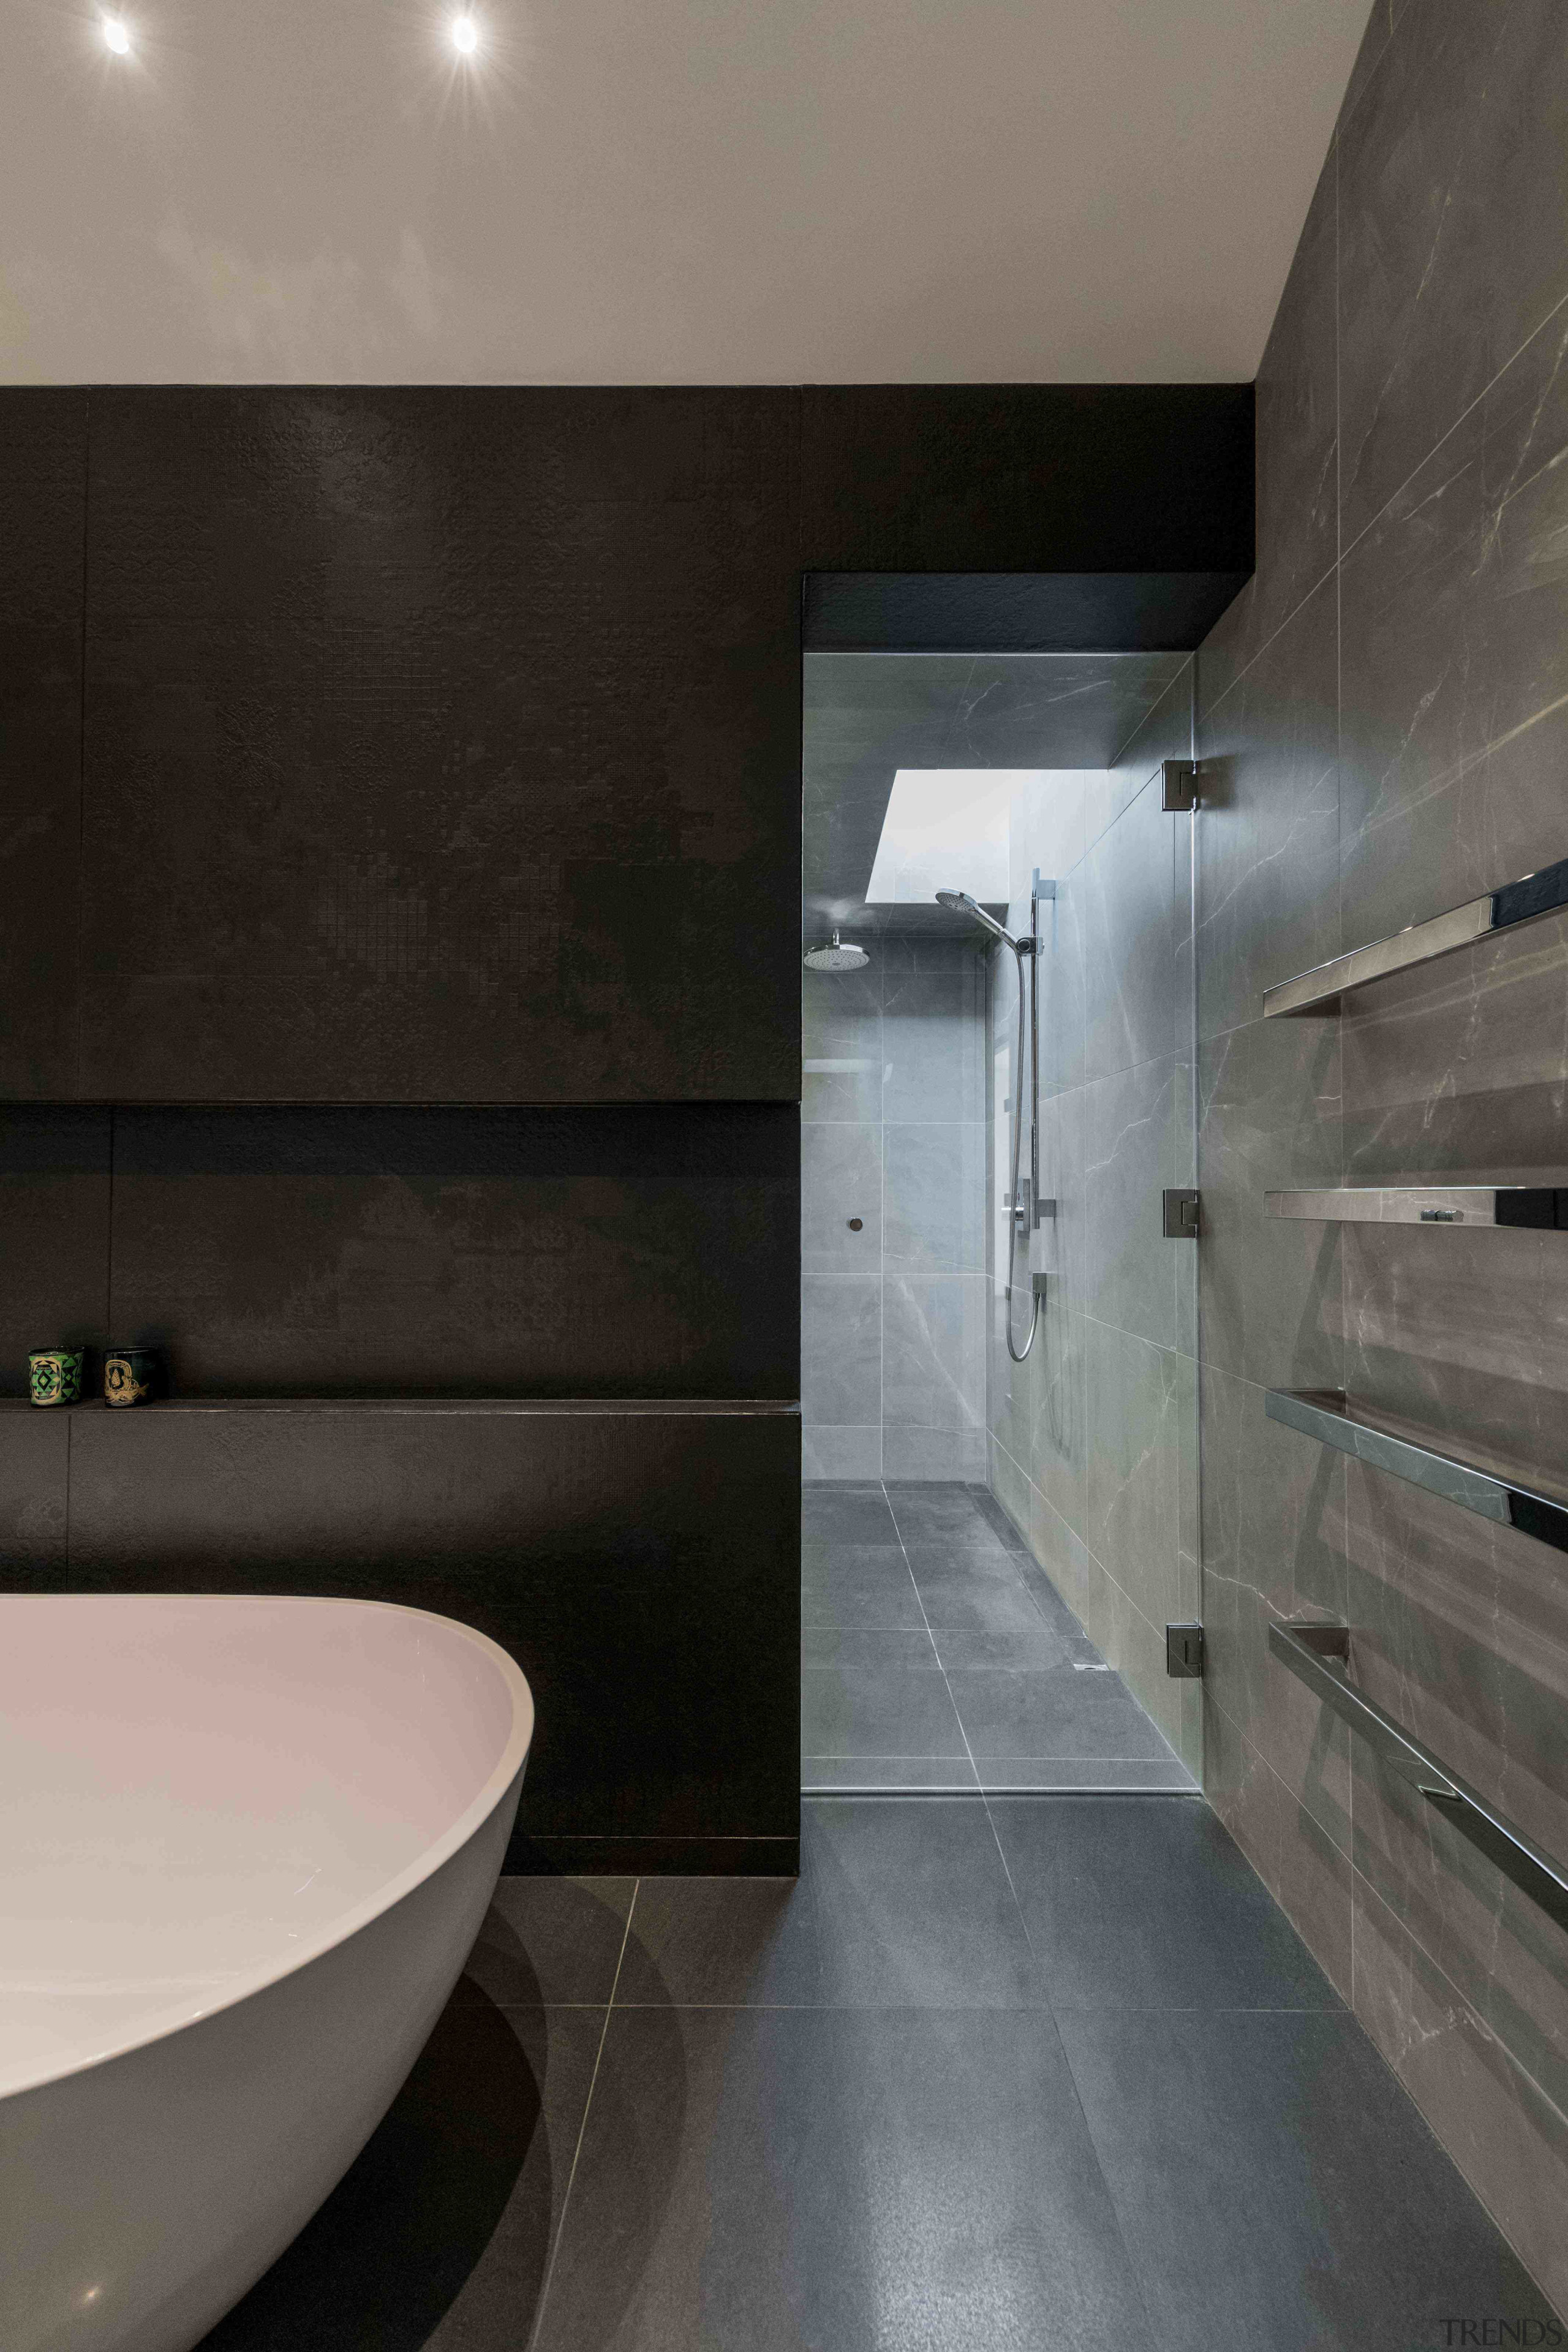 Bespoke cabinetry and spa-like bathing spaces for luxury architecture, bathroom, building, ceiling, floor, flooring, furniture, home, house, interior design, material property, plumbing fixture, property, real estate, room, tap, tile, wall, gray, black